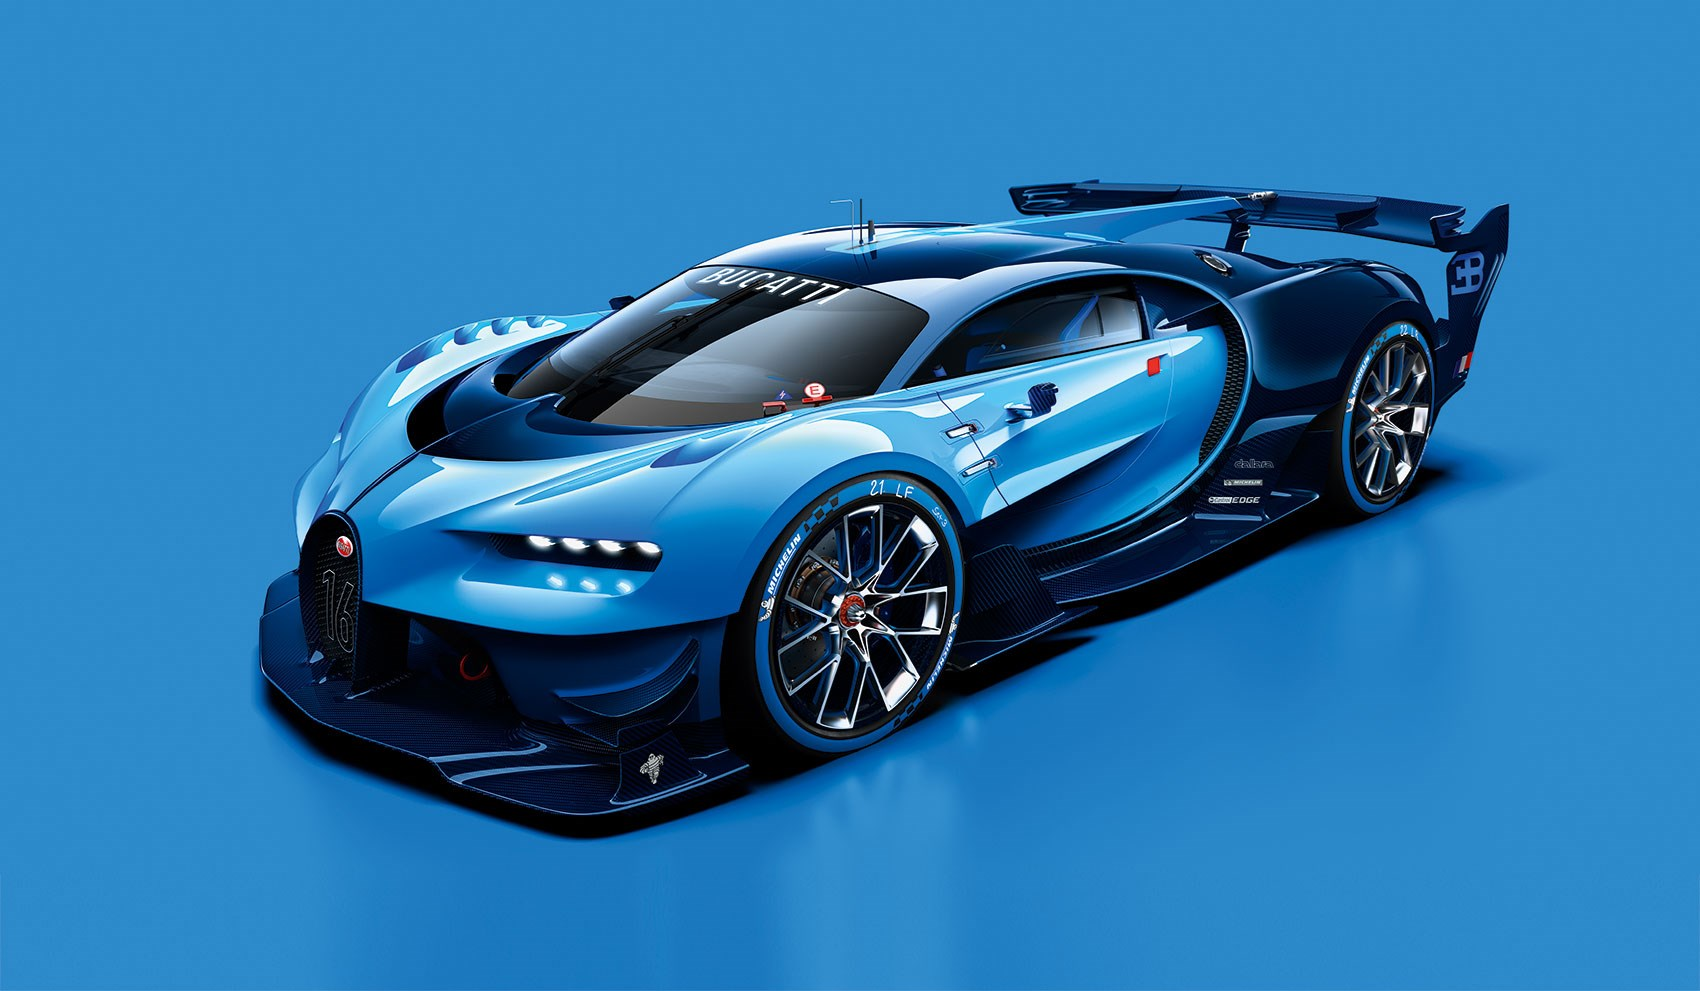 bugatti vision gran turismo at frankfurt motor show shades of chiron by car magazine. Black Bedroom Furniture Sets. Home Design Ideas